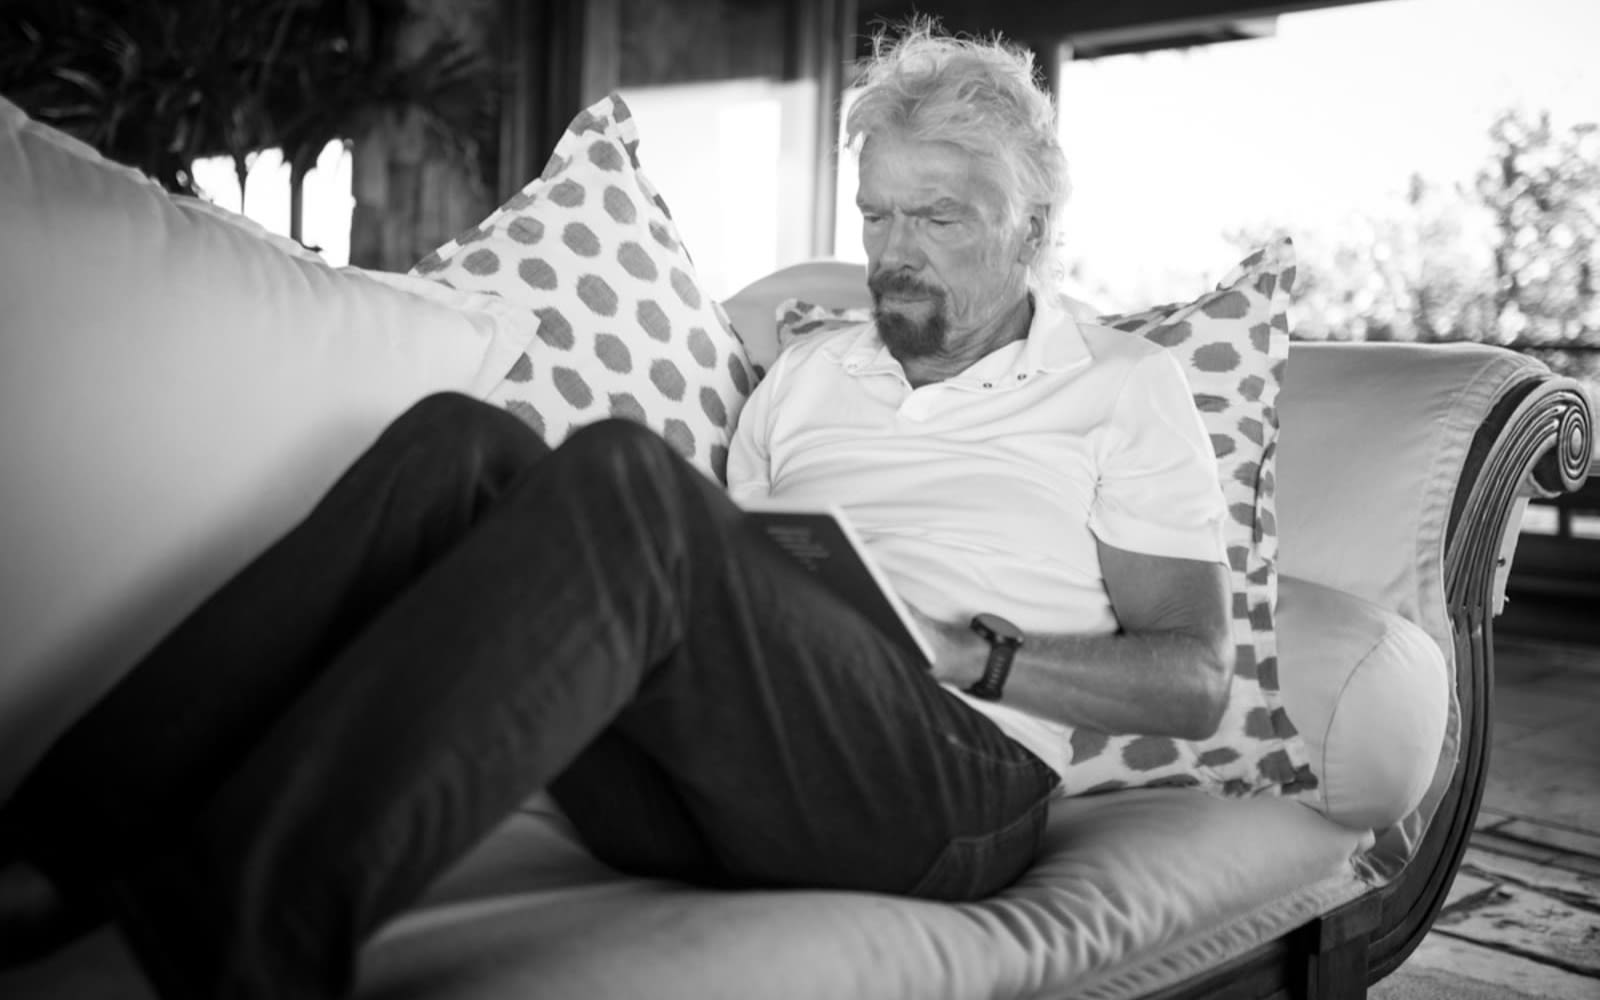 Black and white photo of Richard Branson relaxing and reading on a couch